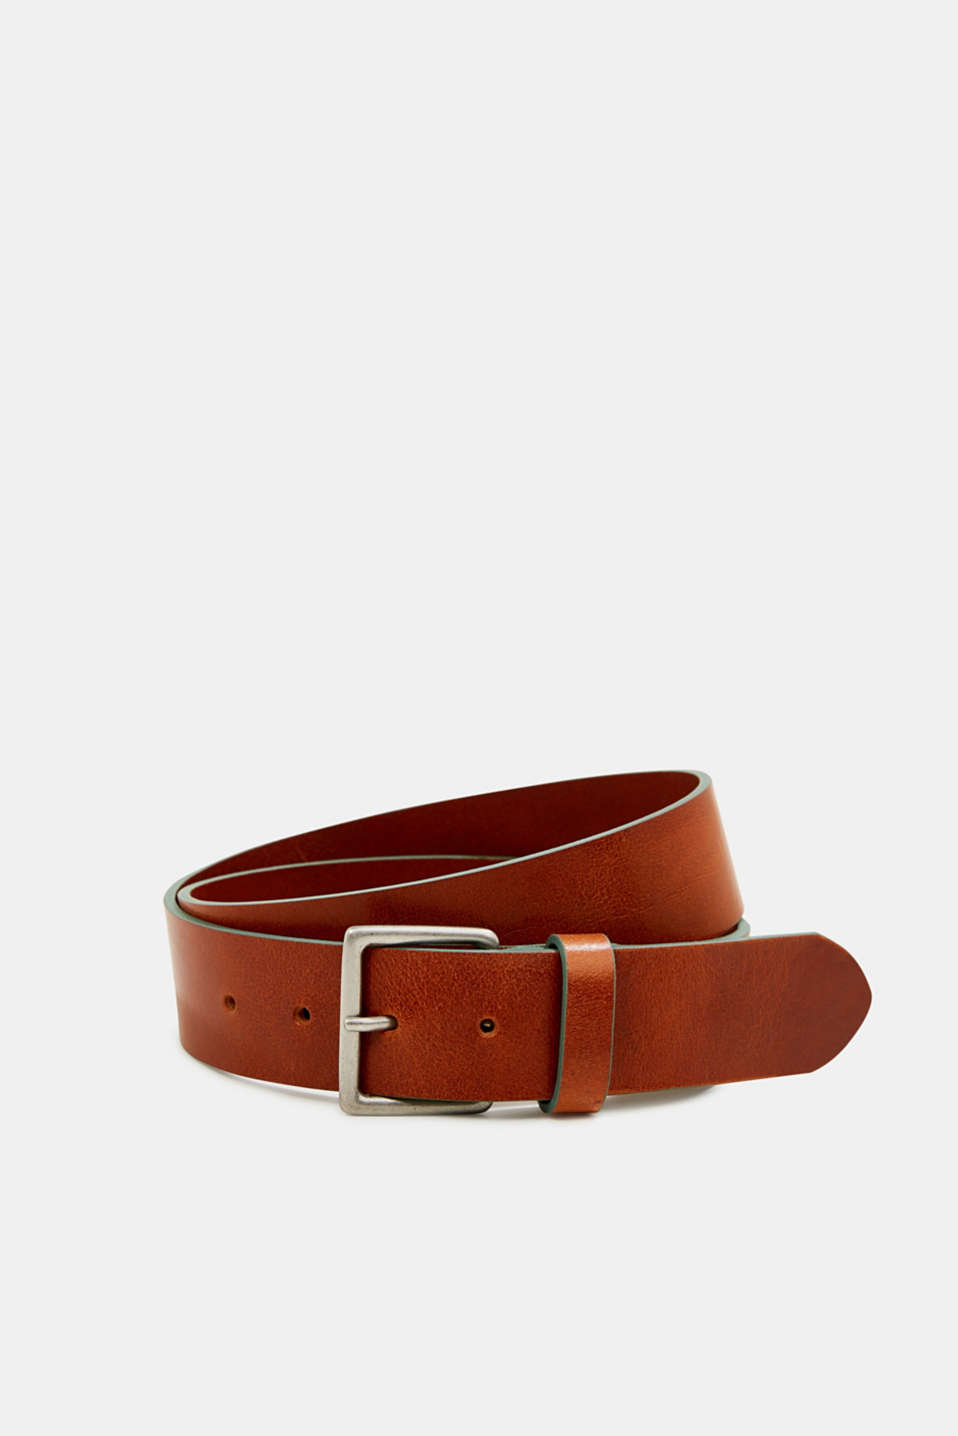 Shiny leather belt with colourful edges, TEAL GREEN, detail image number 0